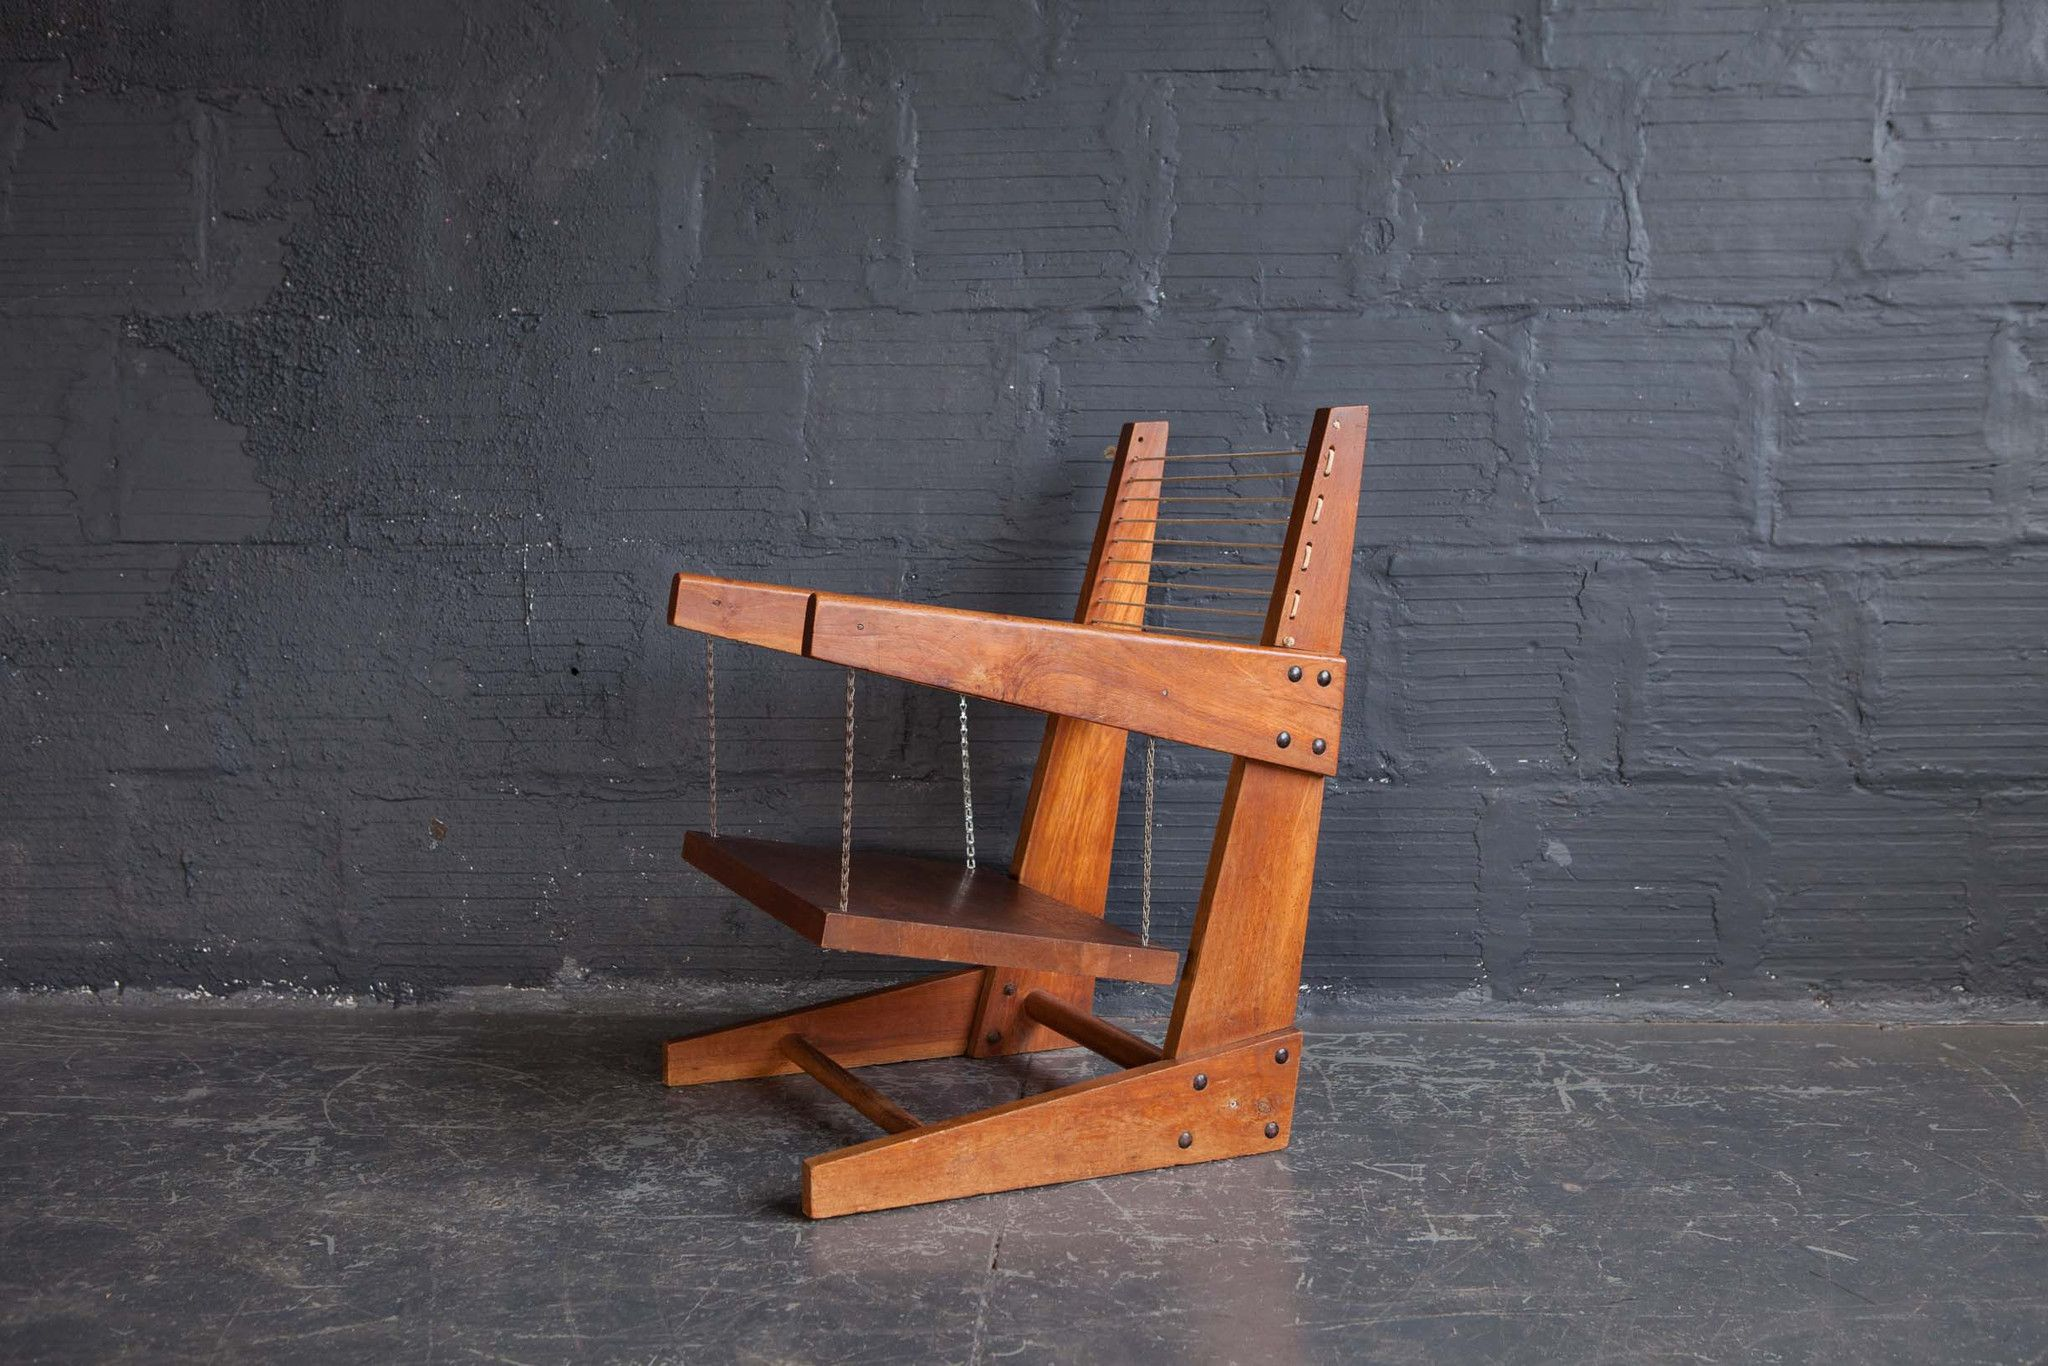 Rare hanging chair by pierre jeanneret design history pierre